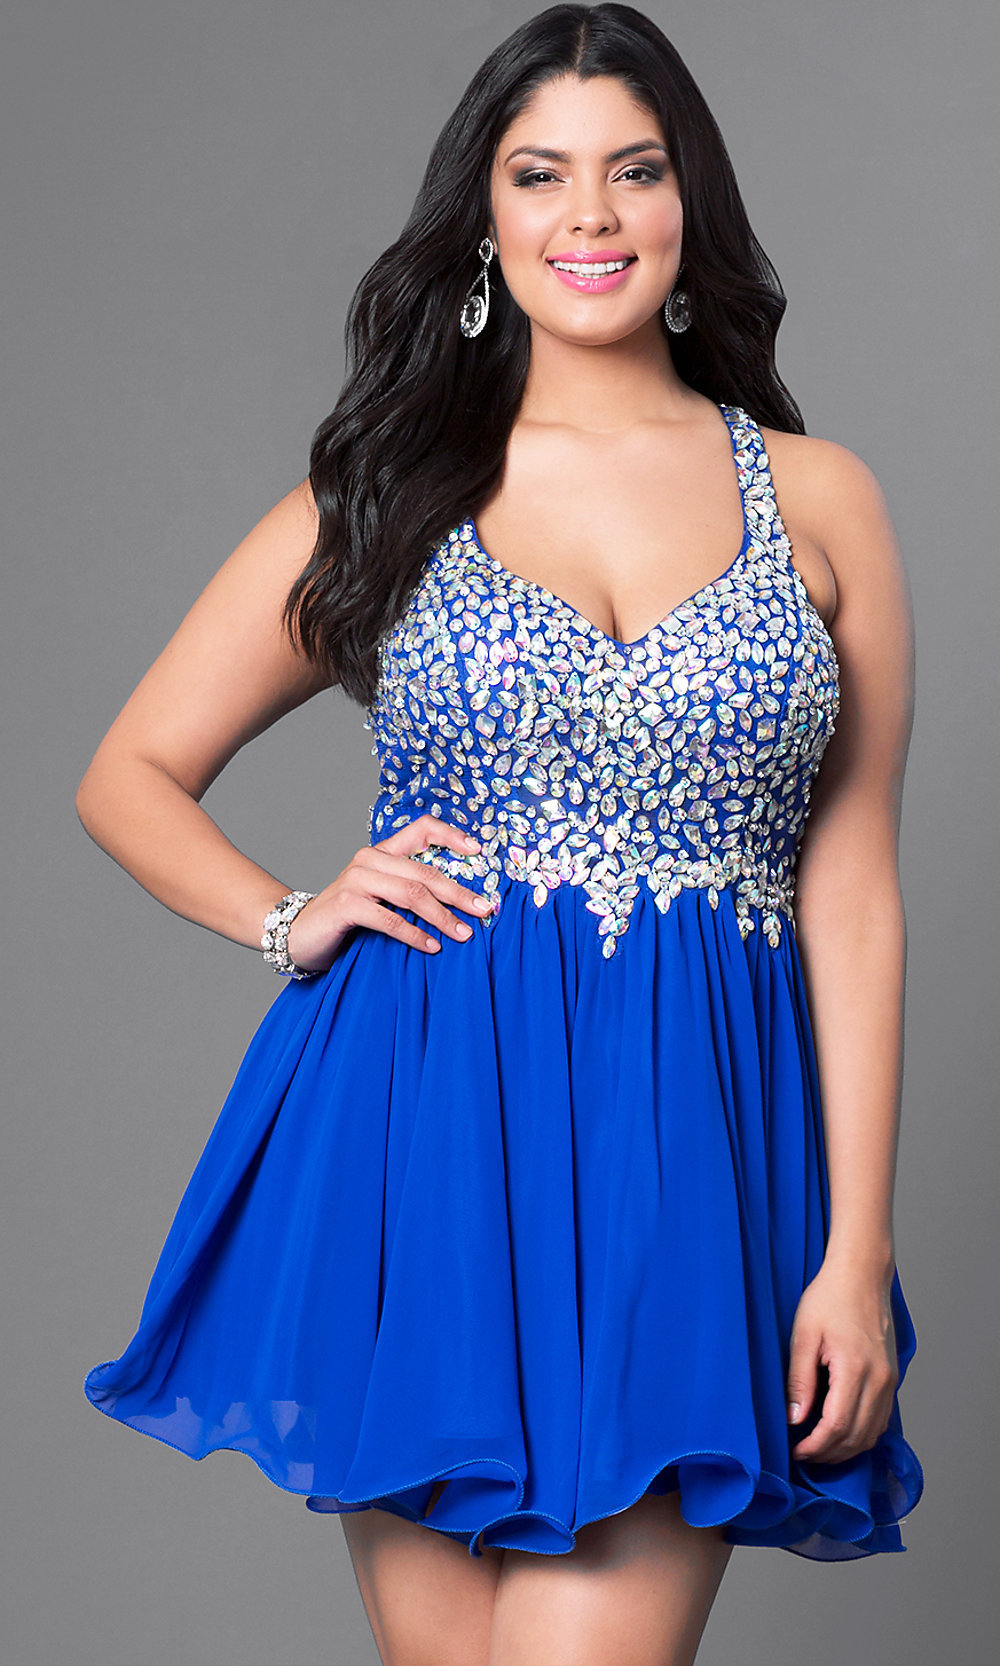 Pin on Simply Delicious Plus Size Fashions